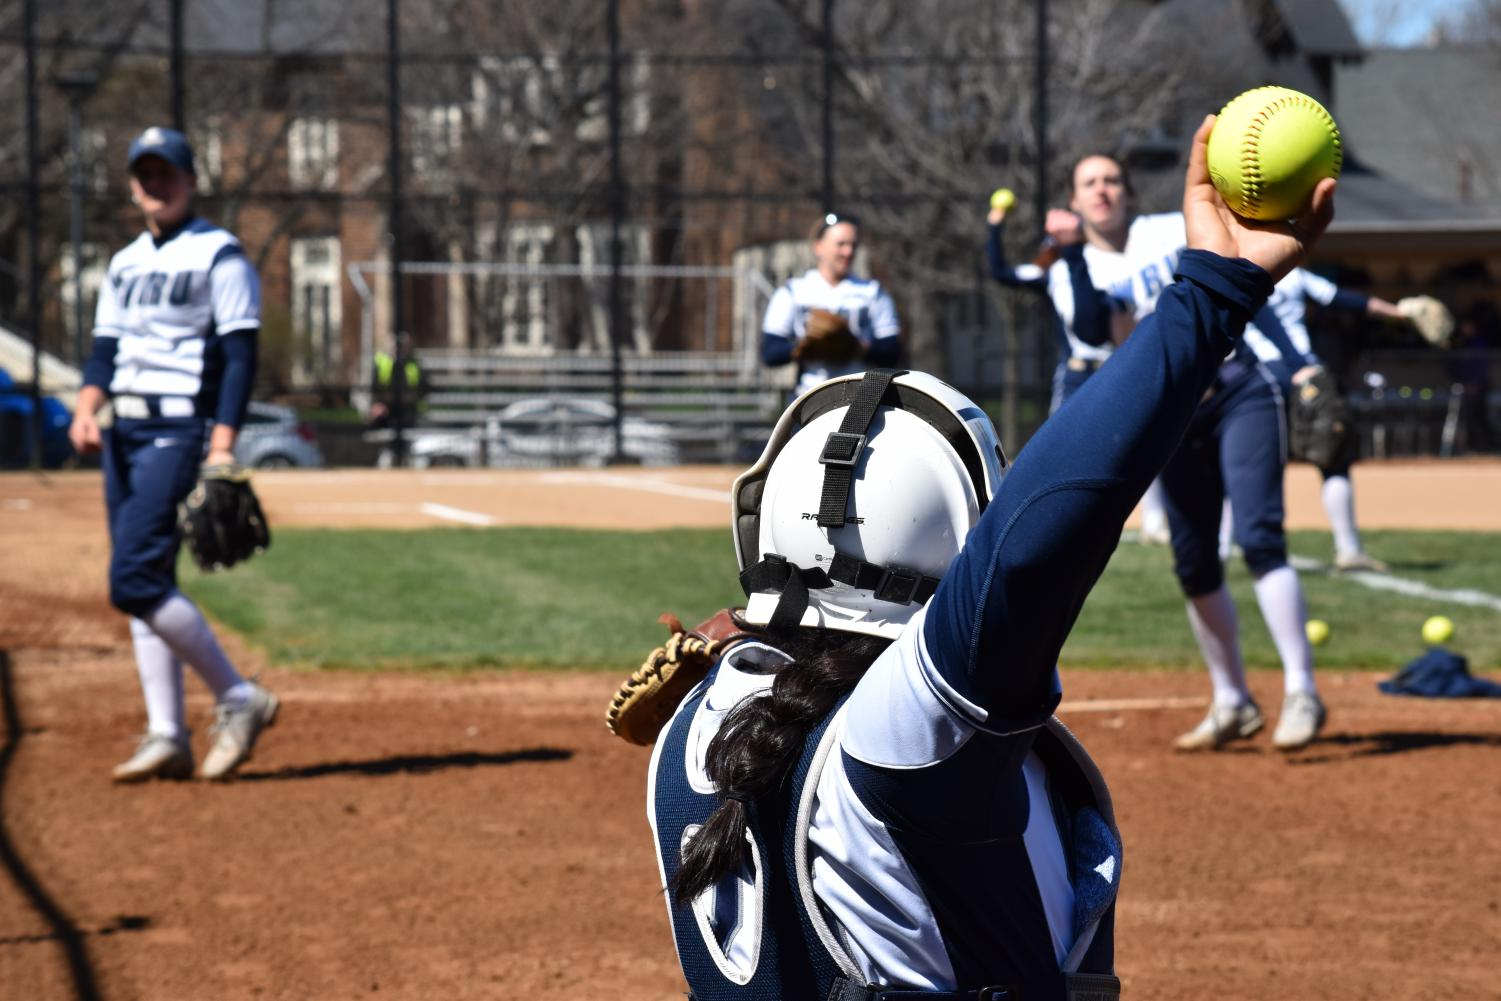 The softball team is currently ranked No. 22 in nation, marking the first time in school history the team has appearing in the Division III top 25 rankings. The team is on a roll, with a 7-1 record from blowout wins.